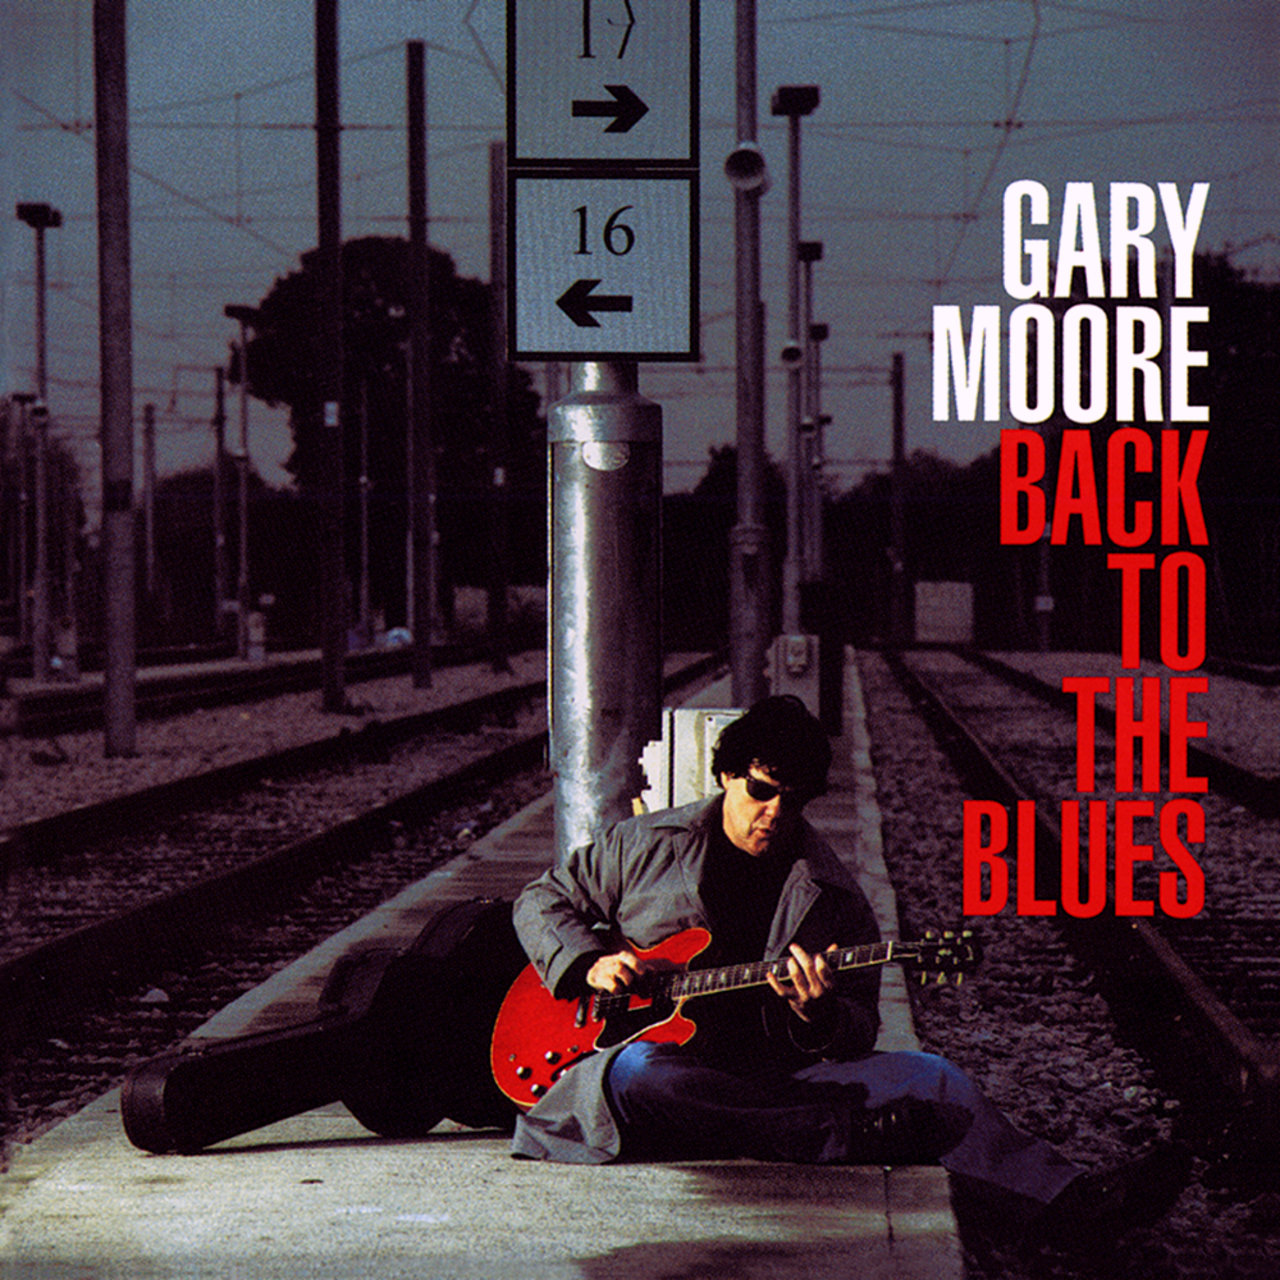 Back To The Blues (Reissue)